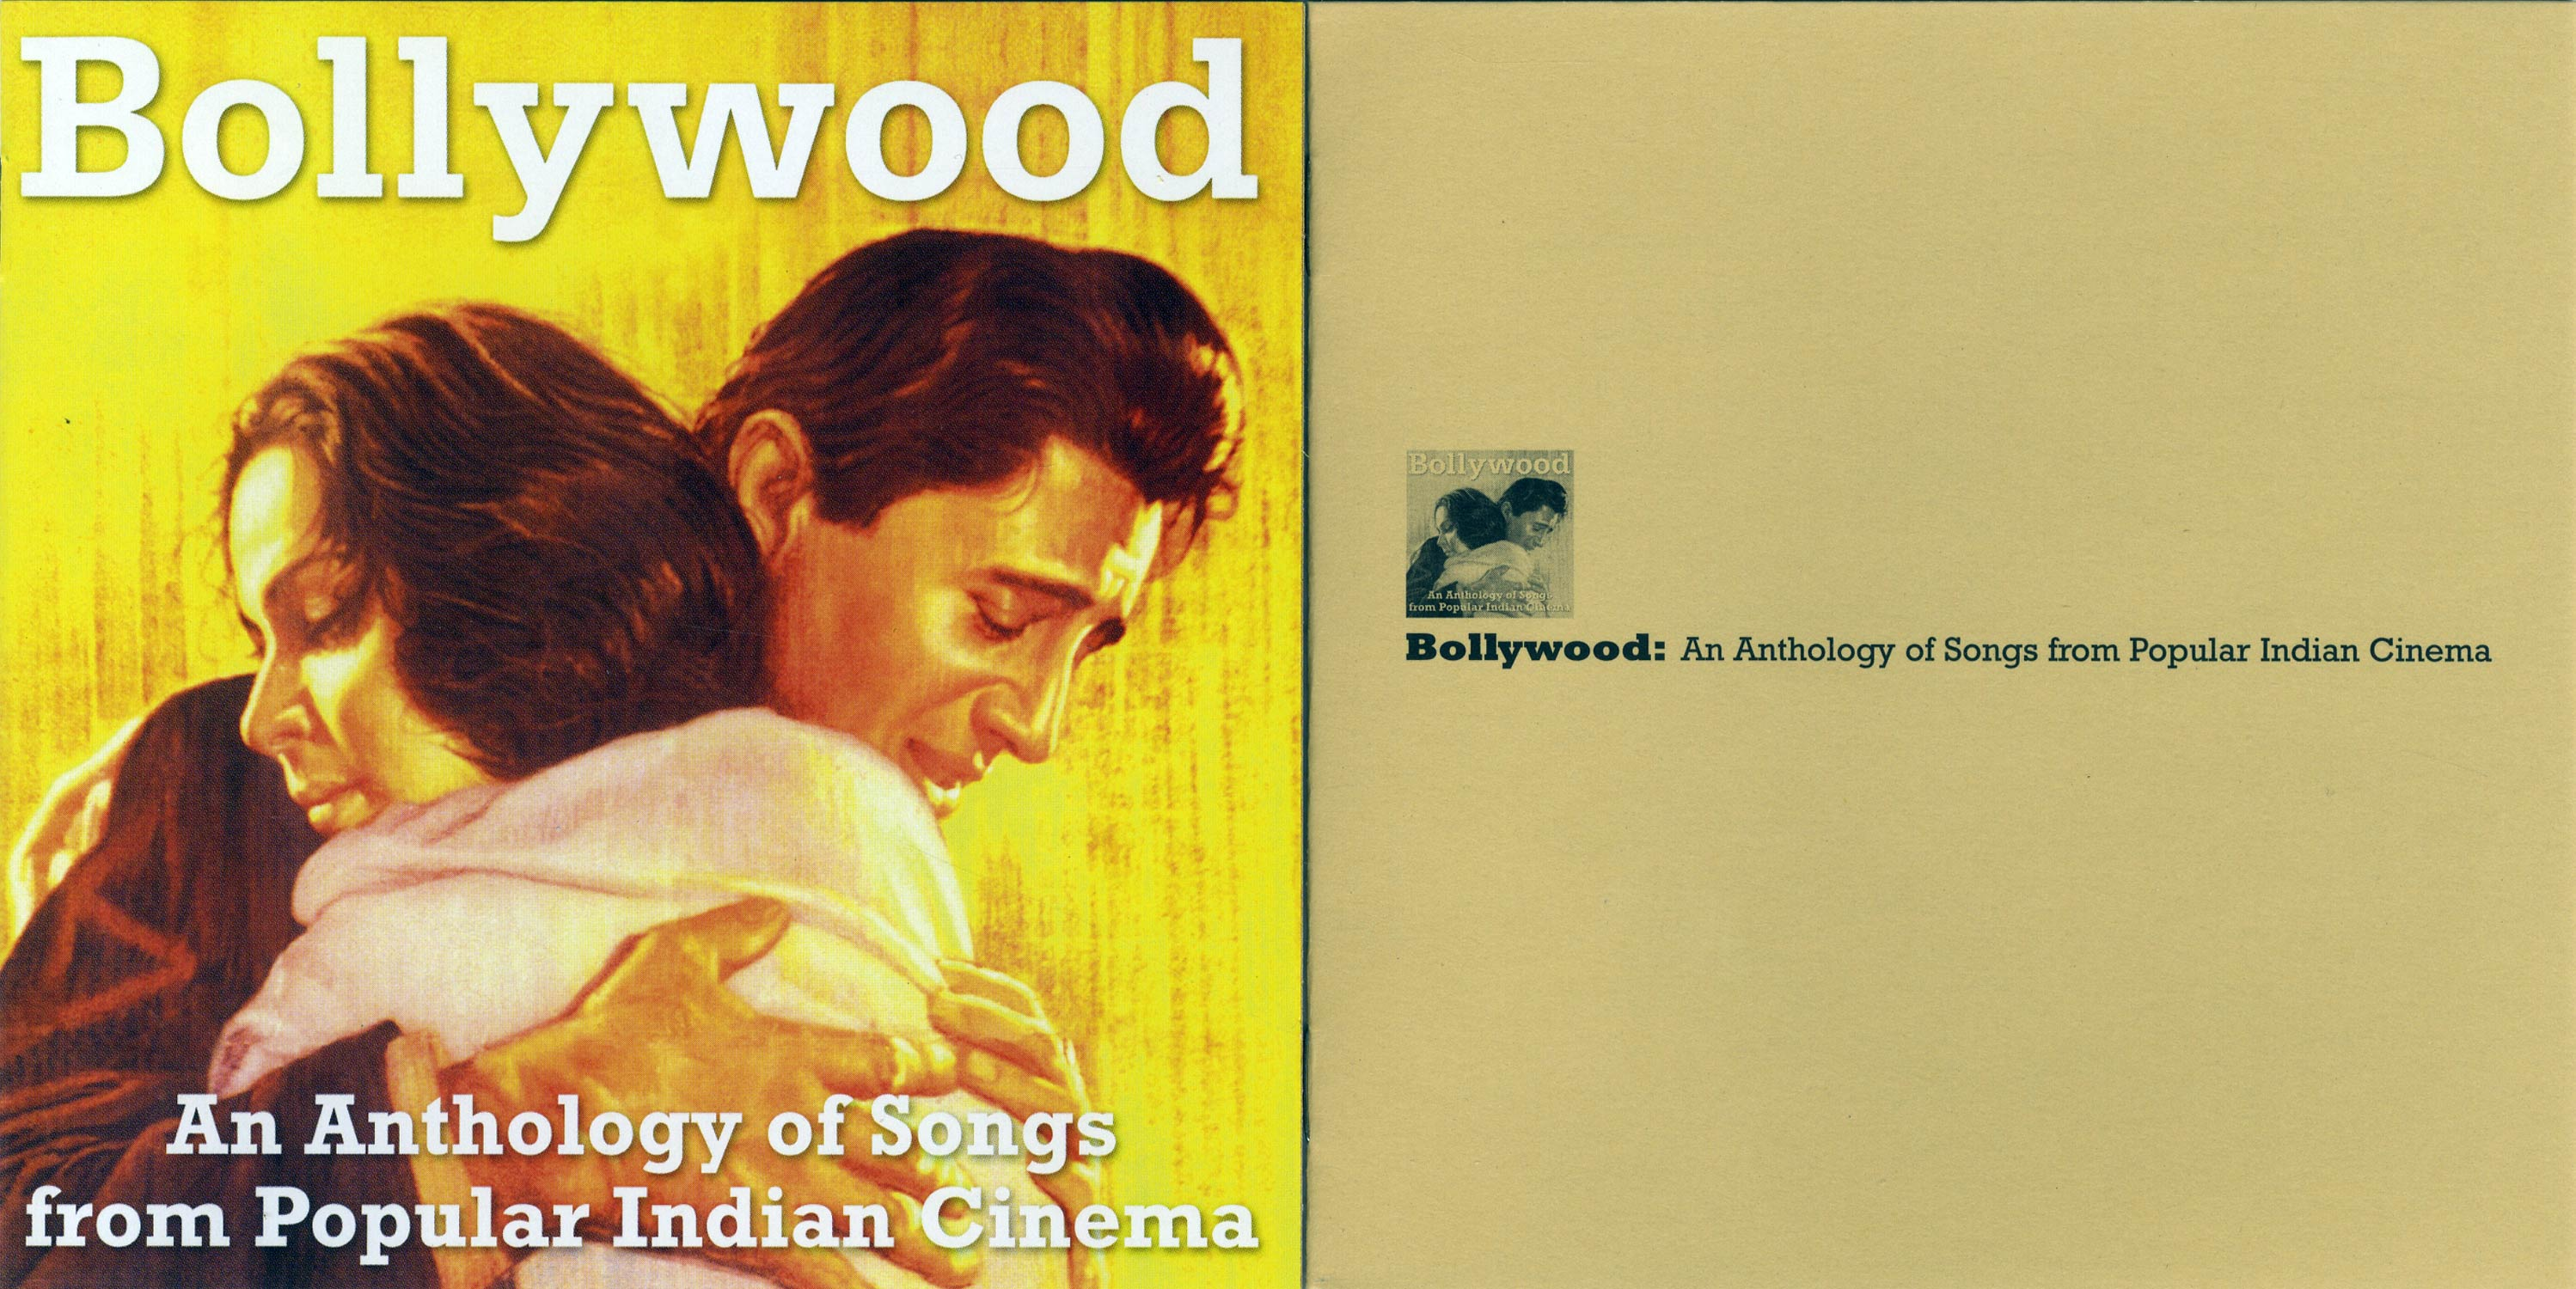 Bollywood An Anthology of Songs from Popular Indian Cinema[image4]